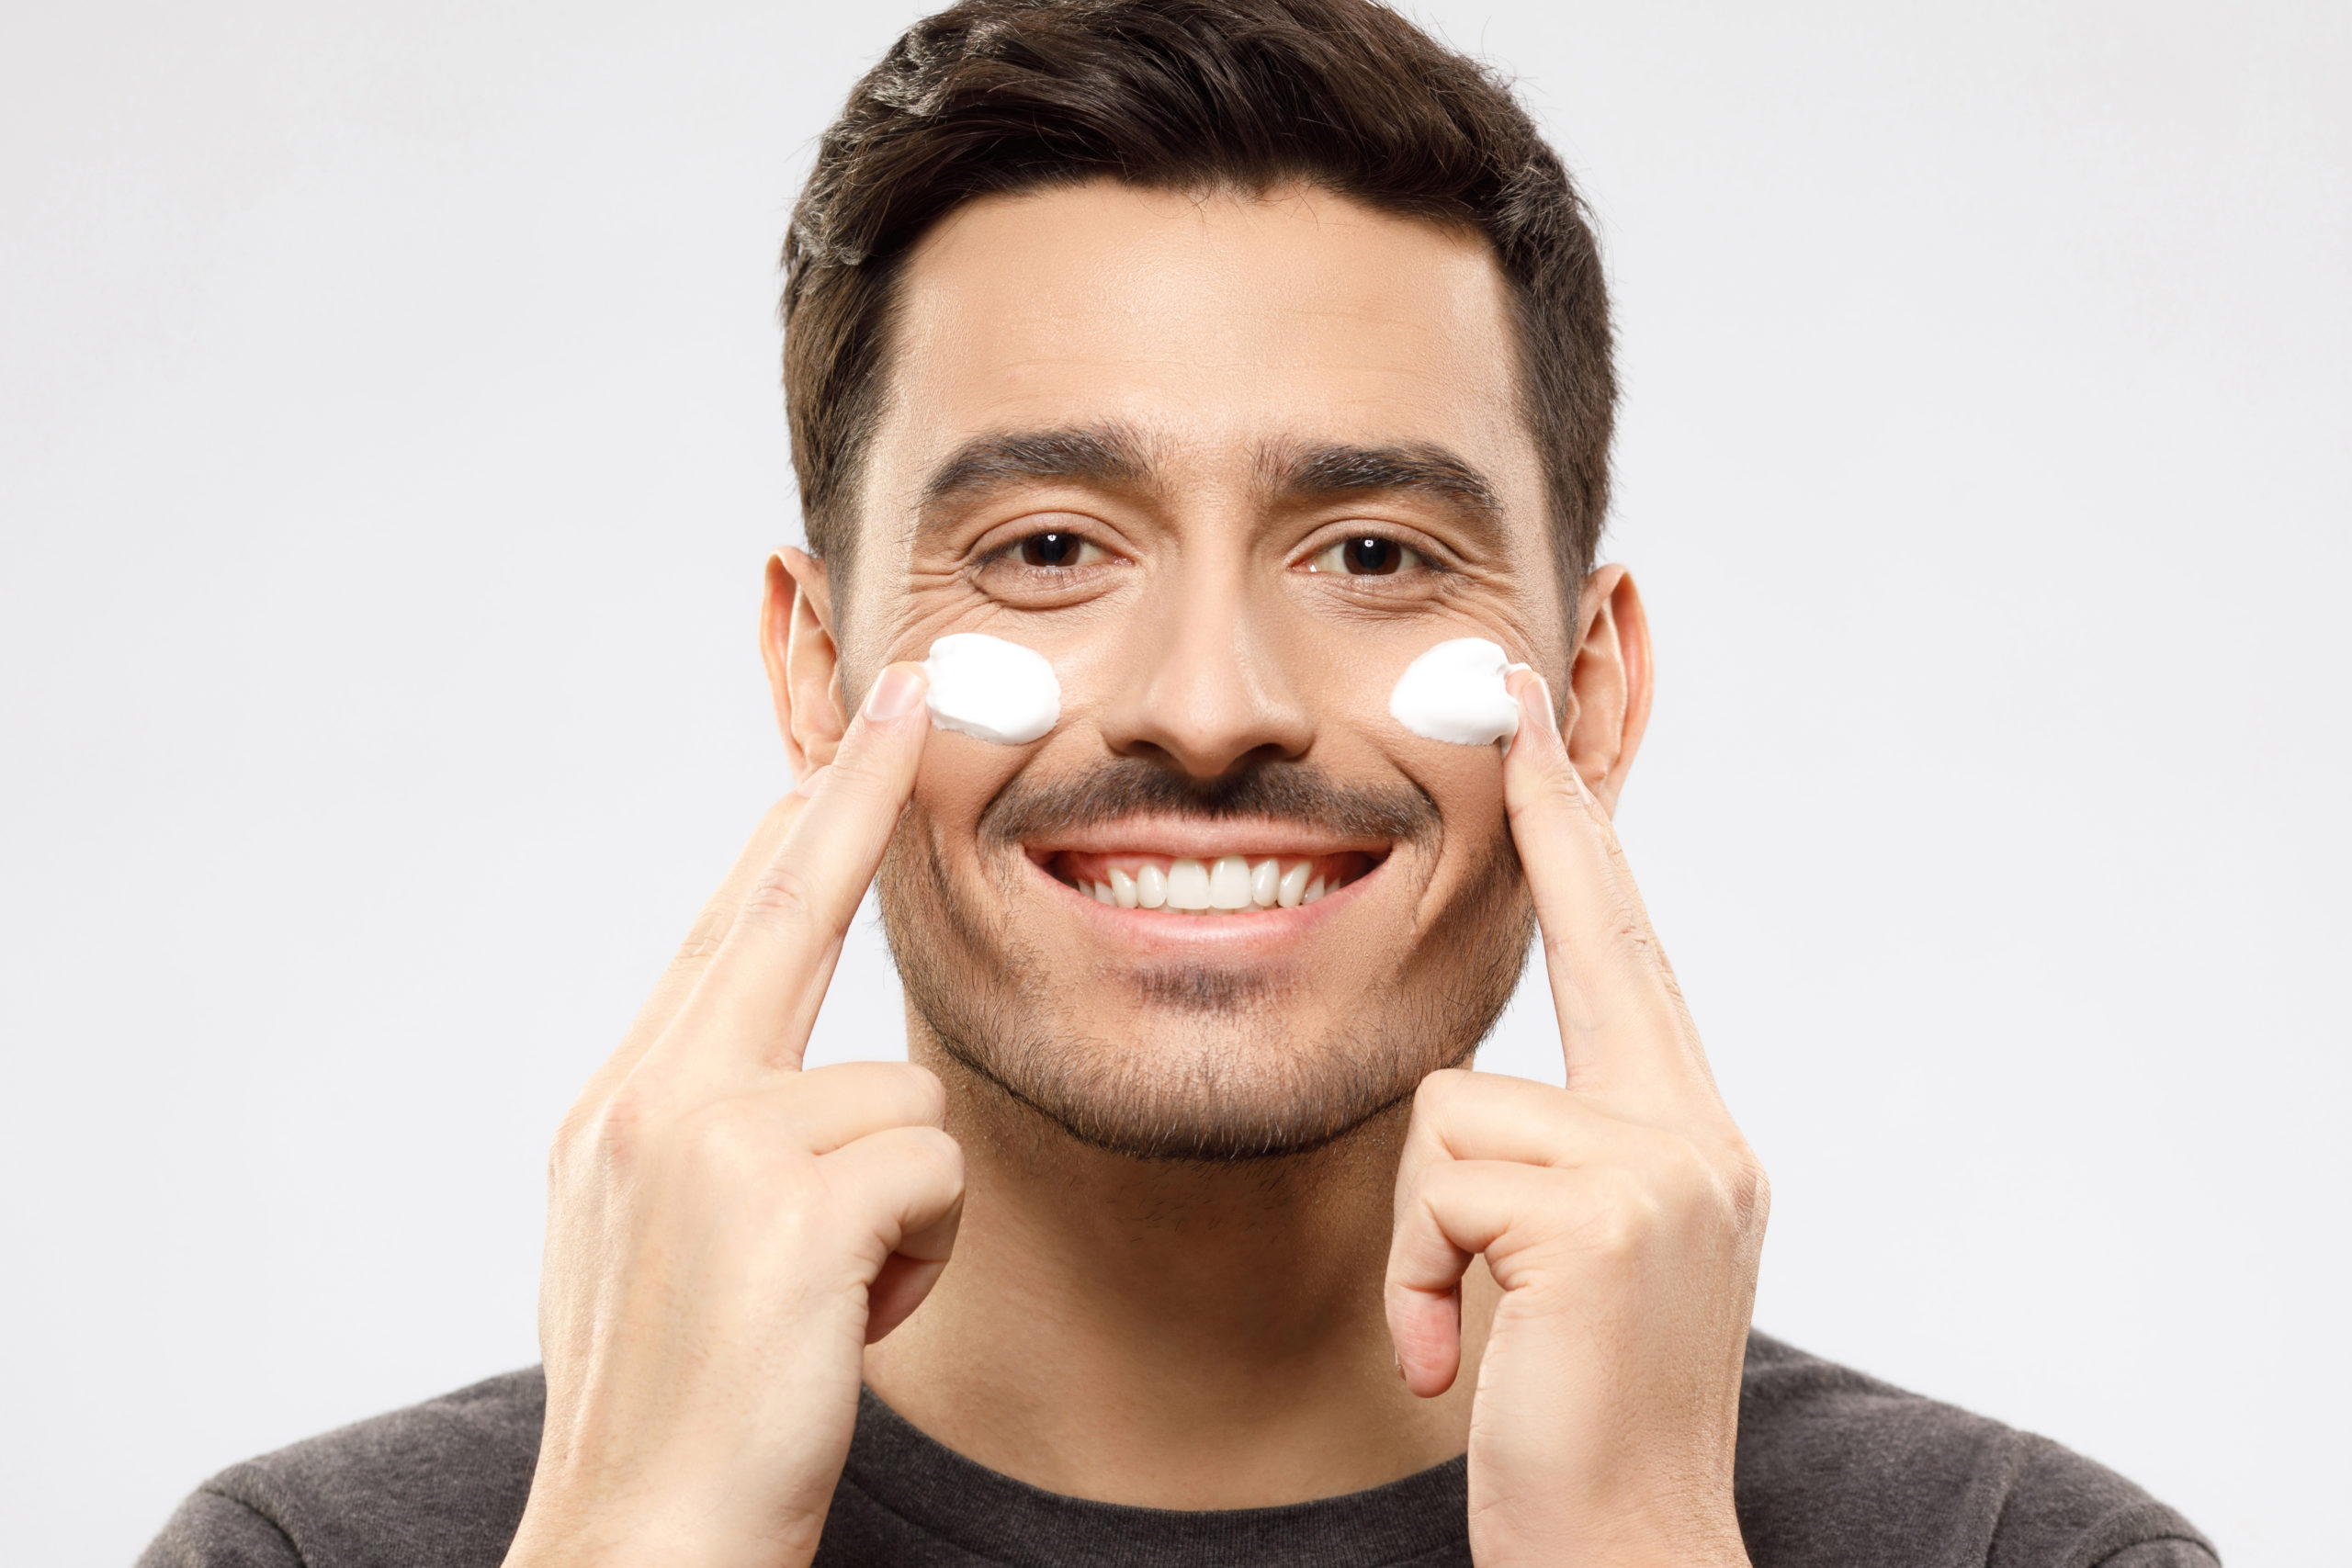 Handsome young man looking at camera, touching cheeks with fingers, applying face cream, feeling satisfied with beauty routine, isolated on gray background. Skin care men